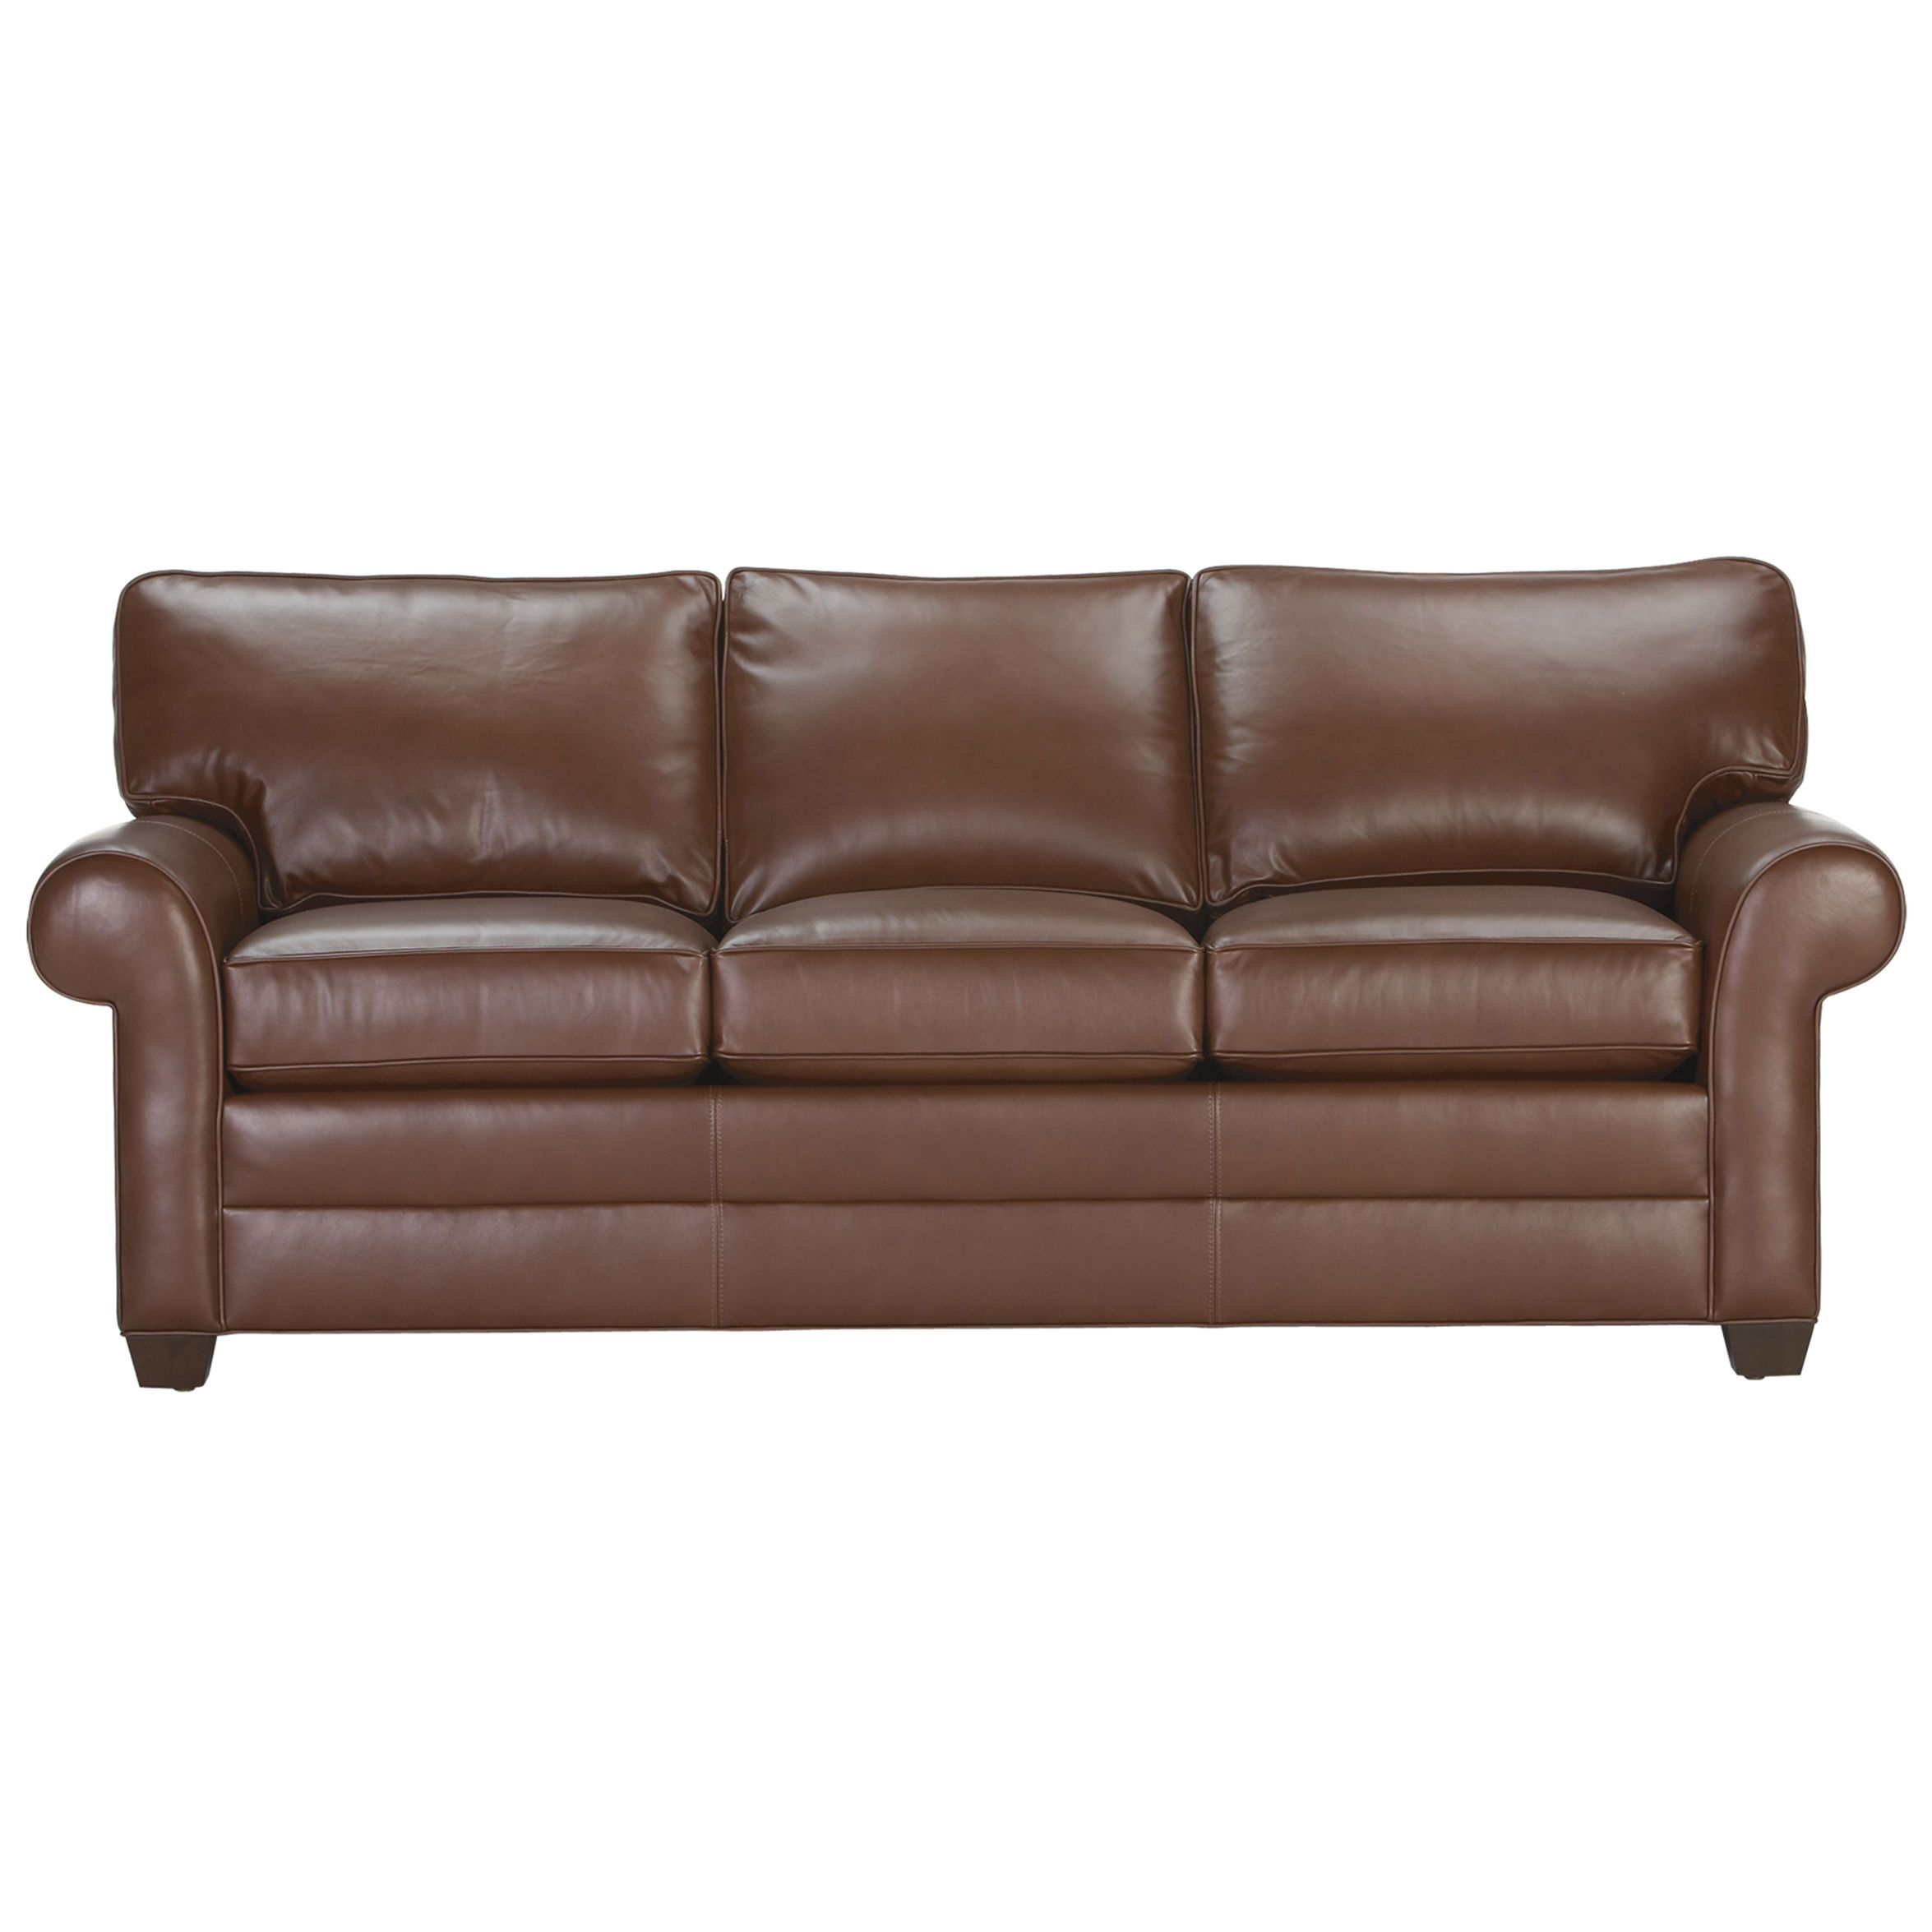 Bennett Leather Sofa Devine Acorn Ethan Allen Us Leather Couch Leather Sofa Love Seat